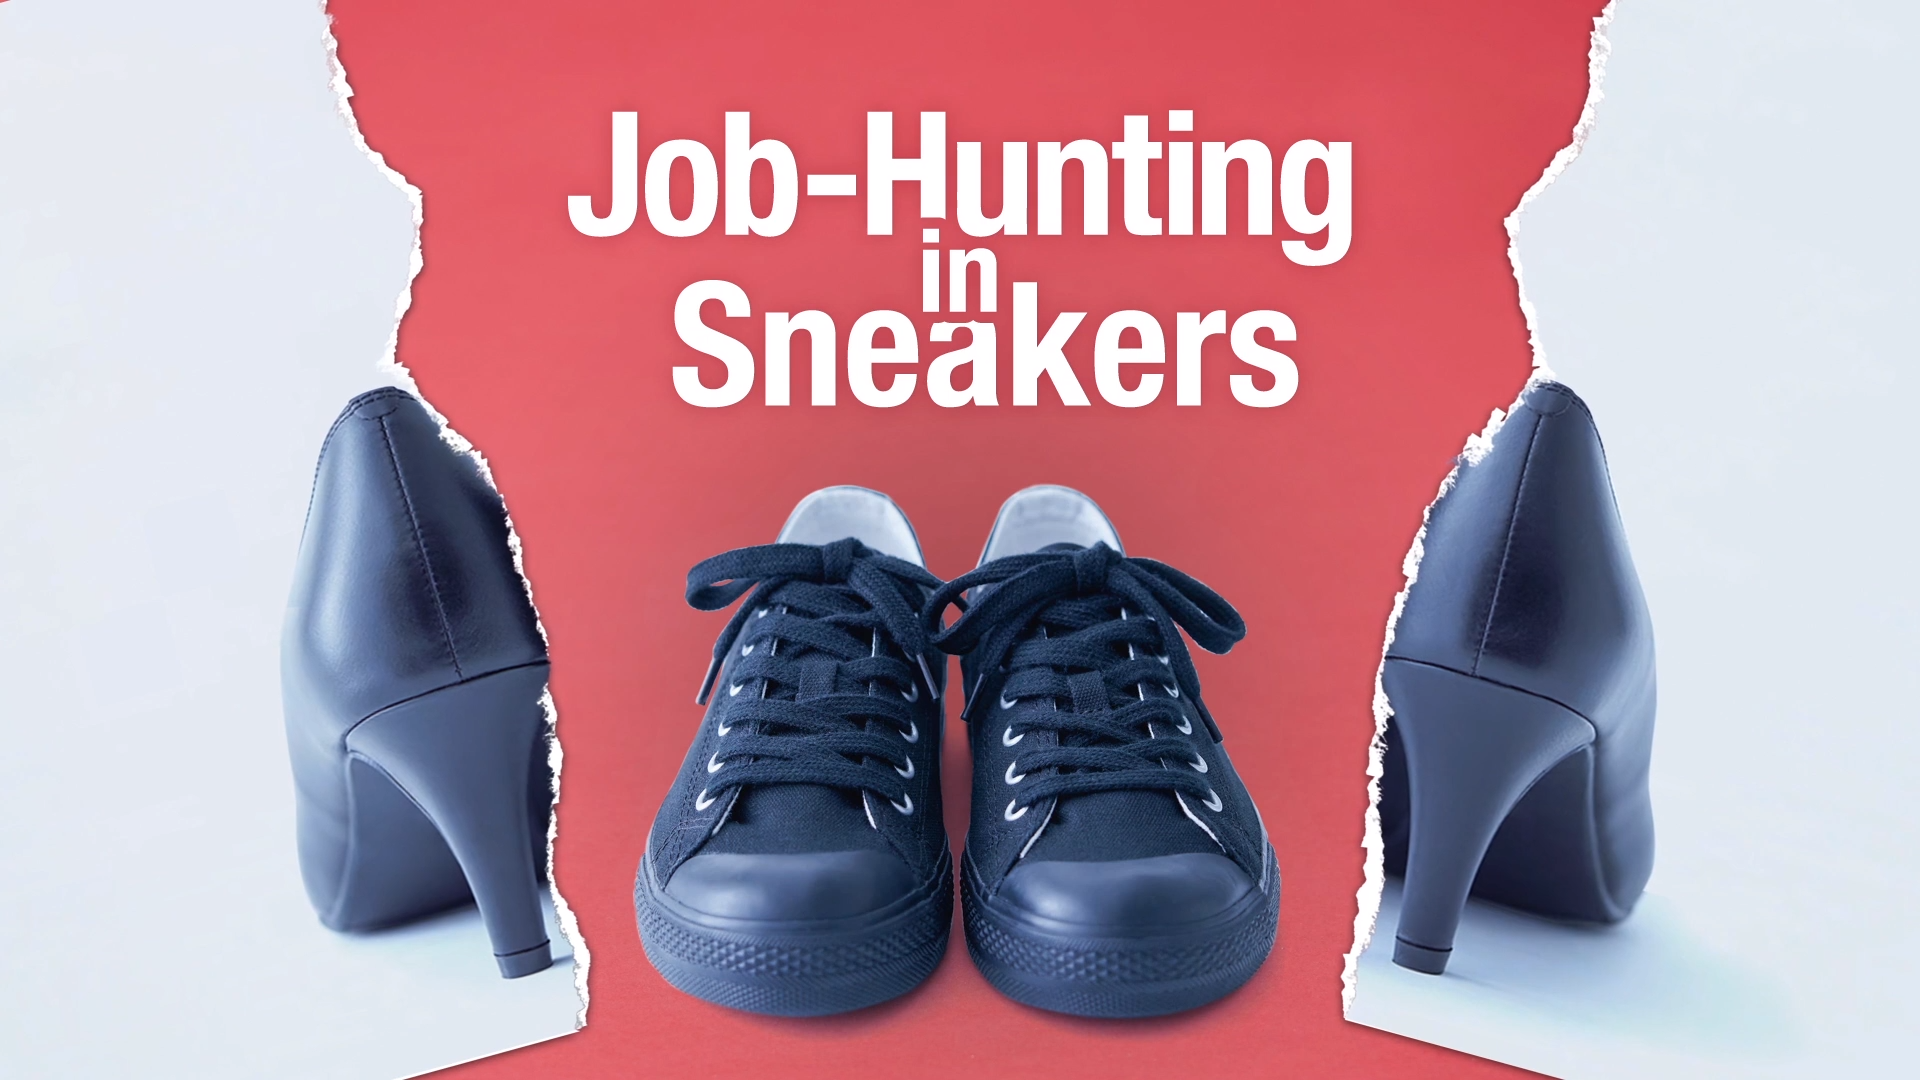 Job-Hunting in Sneakers